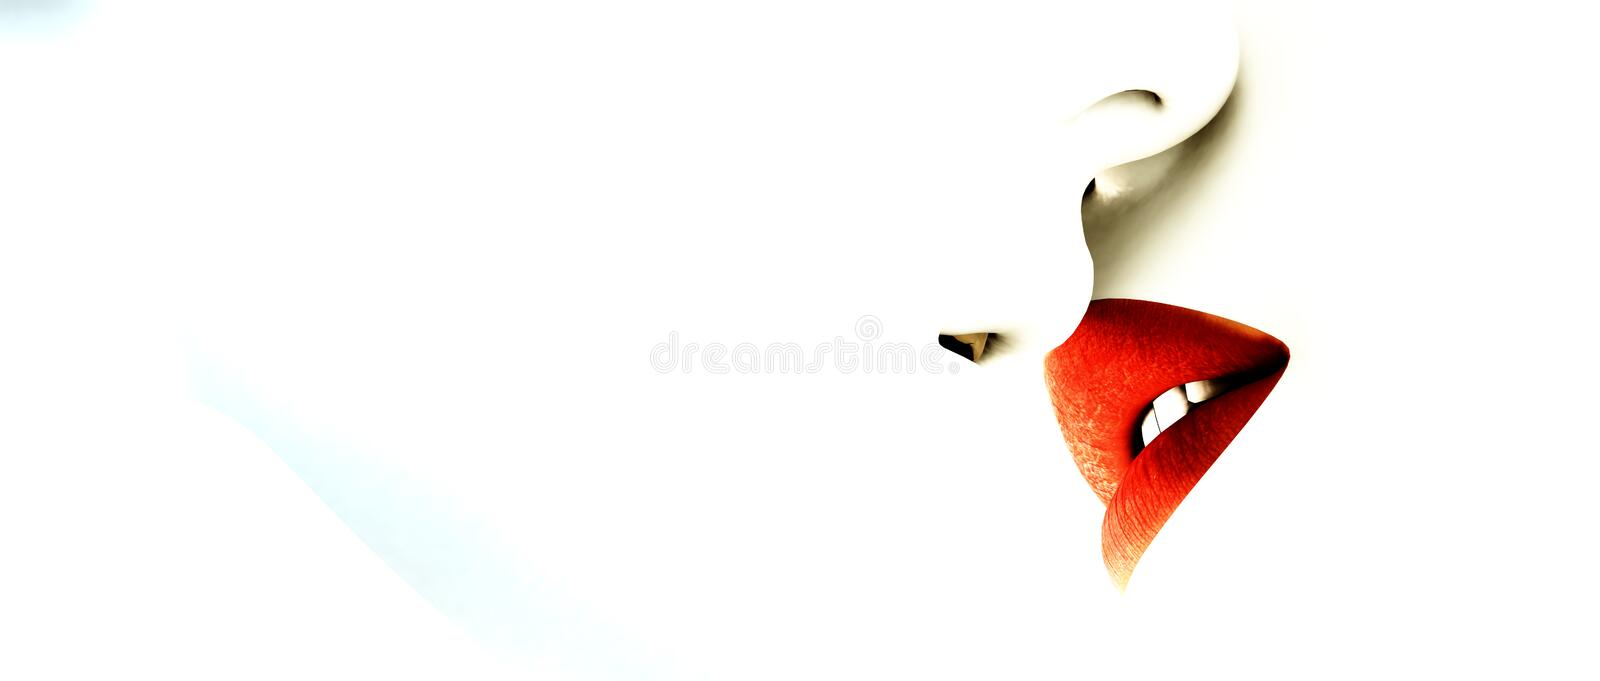 Red lips abstract. Woman with ruby red lips about to kiss someone with white lips royalty free illustration